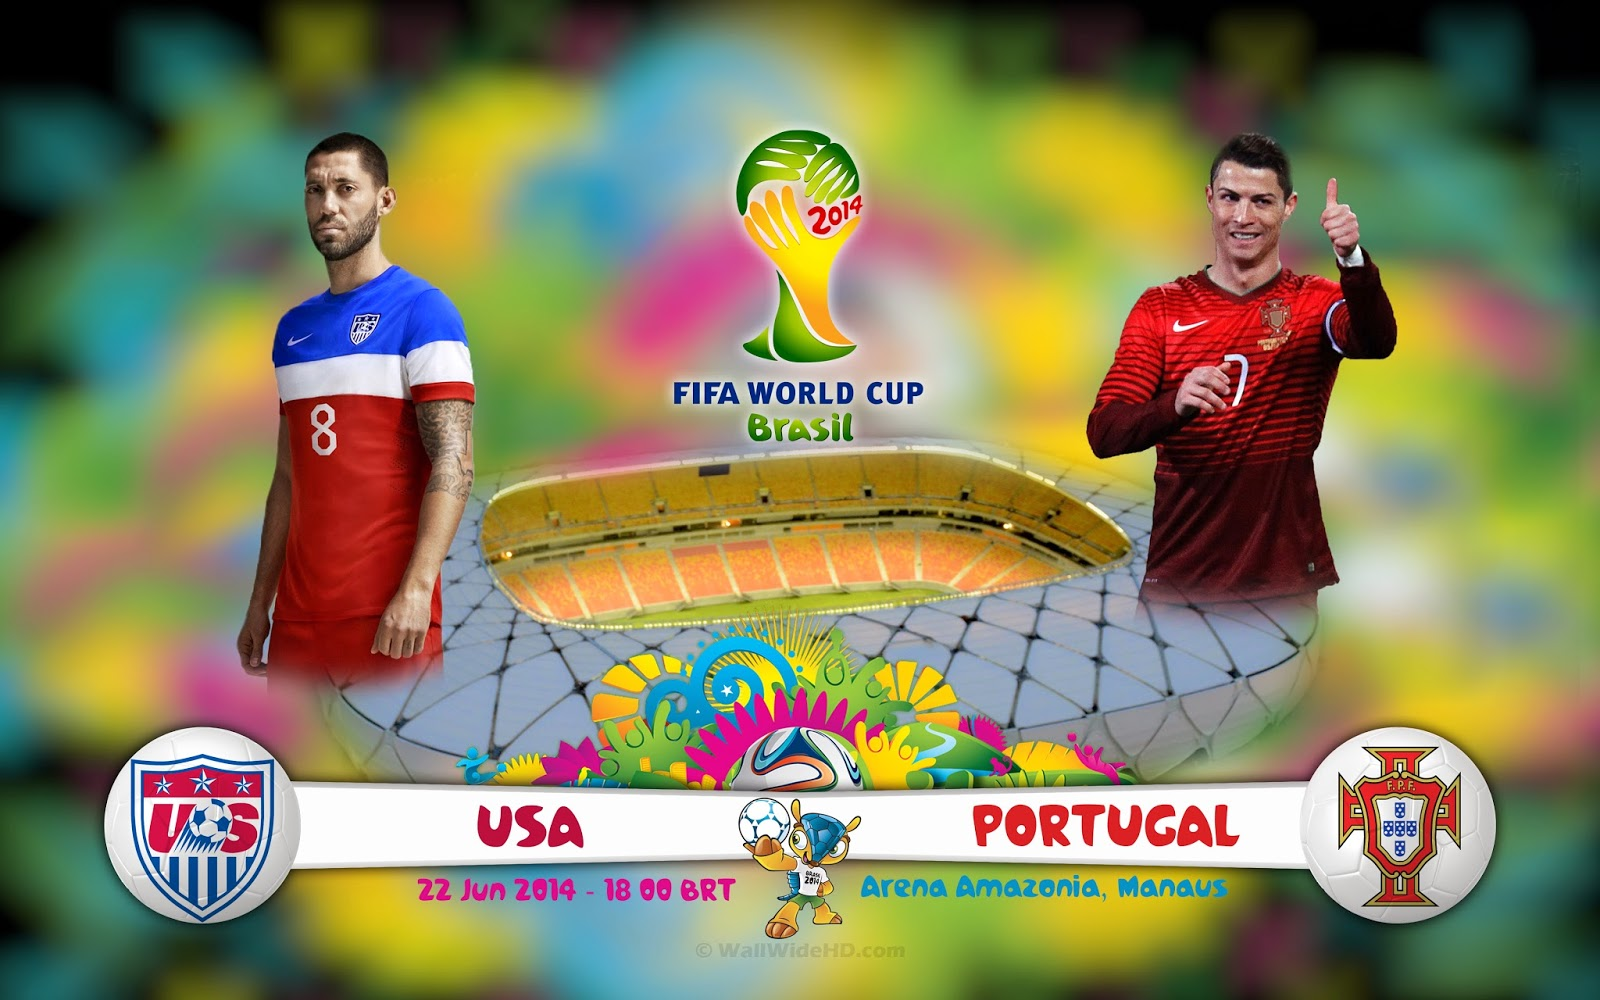 Portugal World Cup 2014 Wallpaper Watch World Cup Match Usa vs